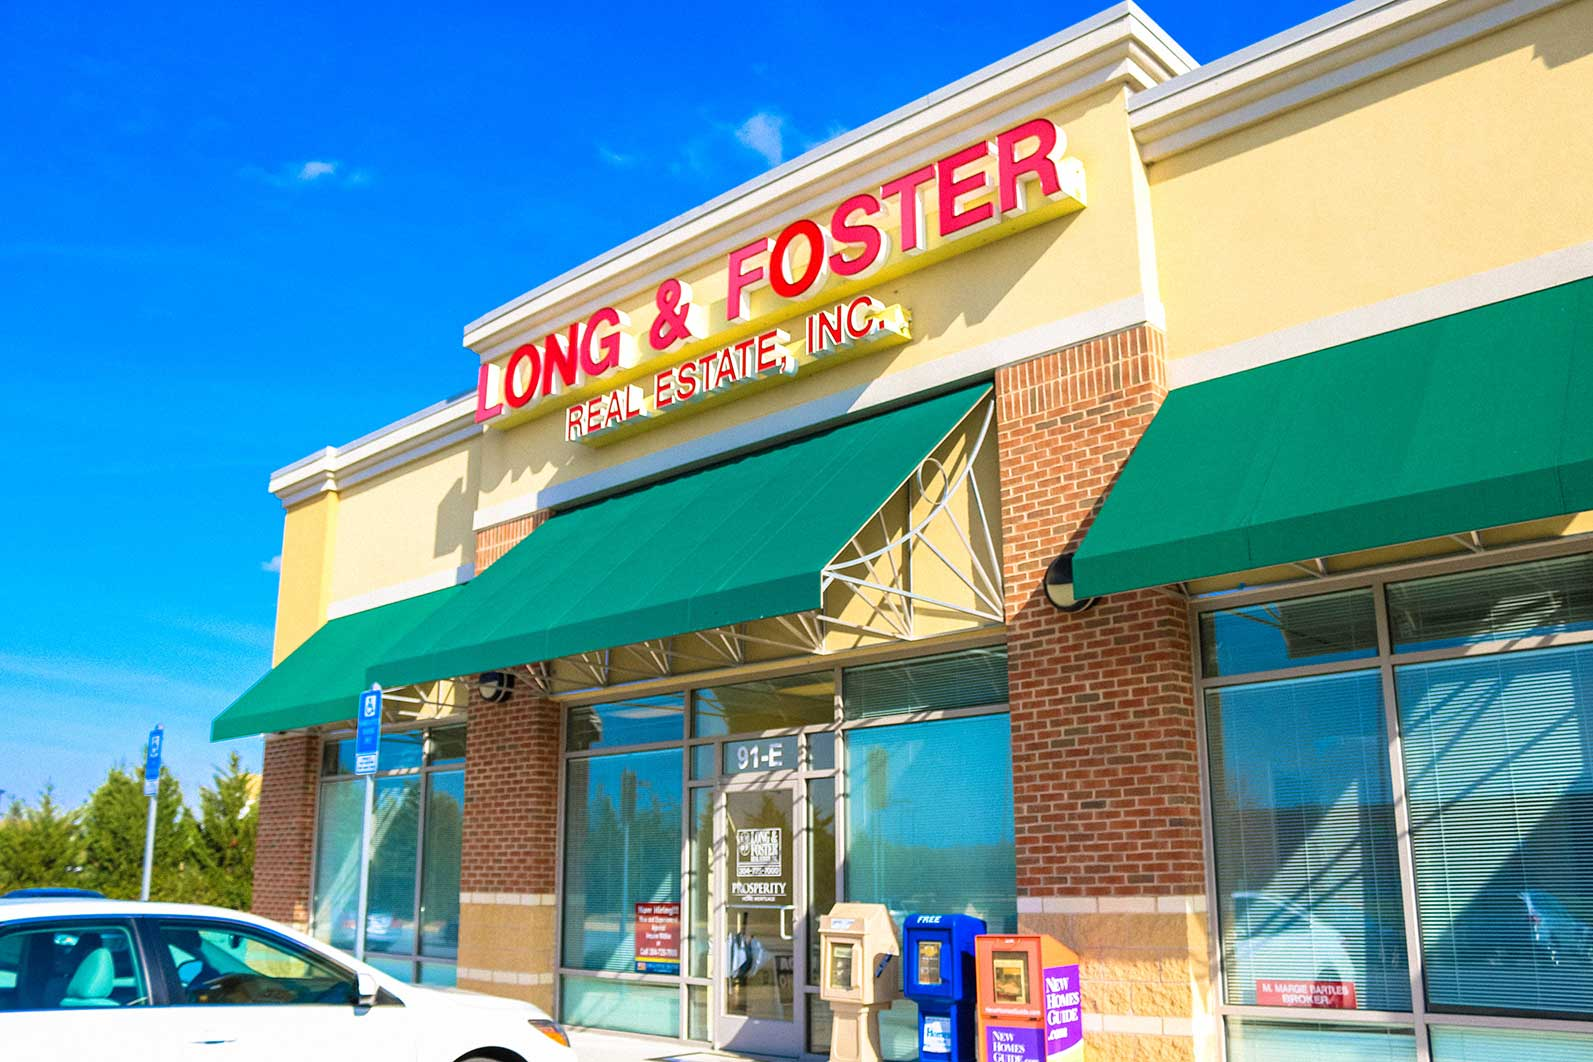 Long & Foster in Charles Town, WV